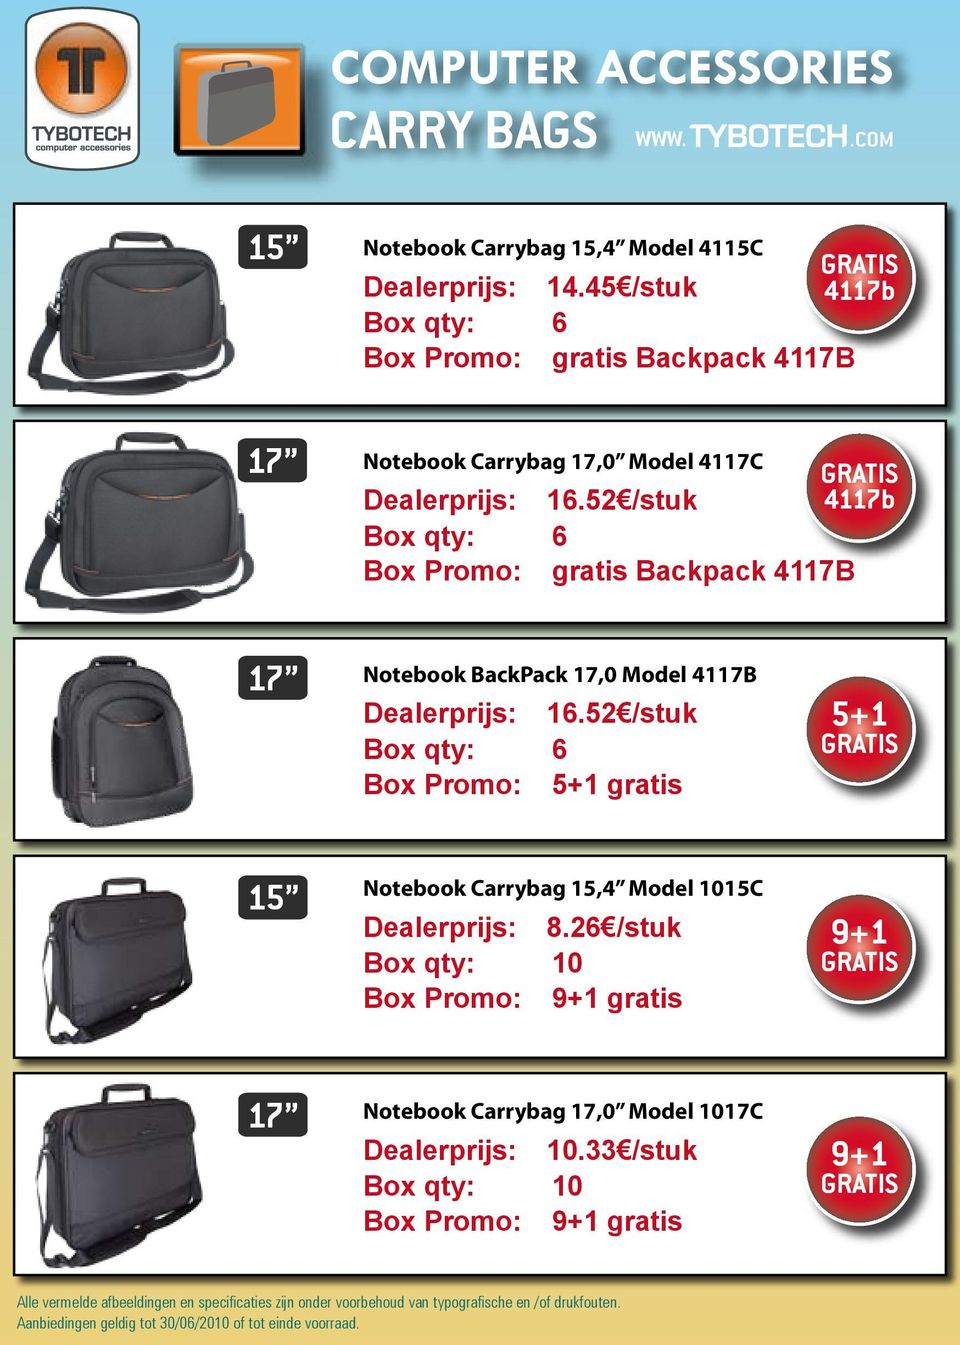 52 /stuk GRATIS 4117b Box qty: 6 Box Promo: gratis Backpack 4117B 17 Notebook BackPack 17,0 Model 4117B Dealerprijs: 16.